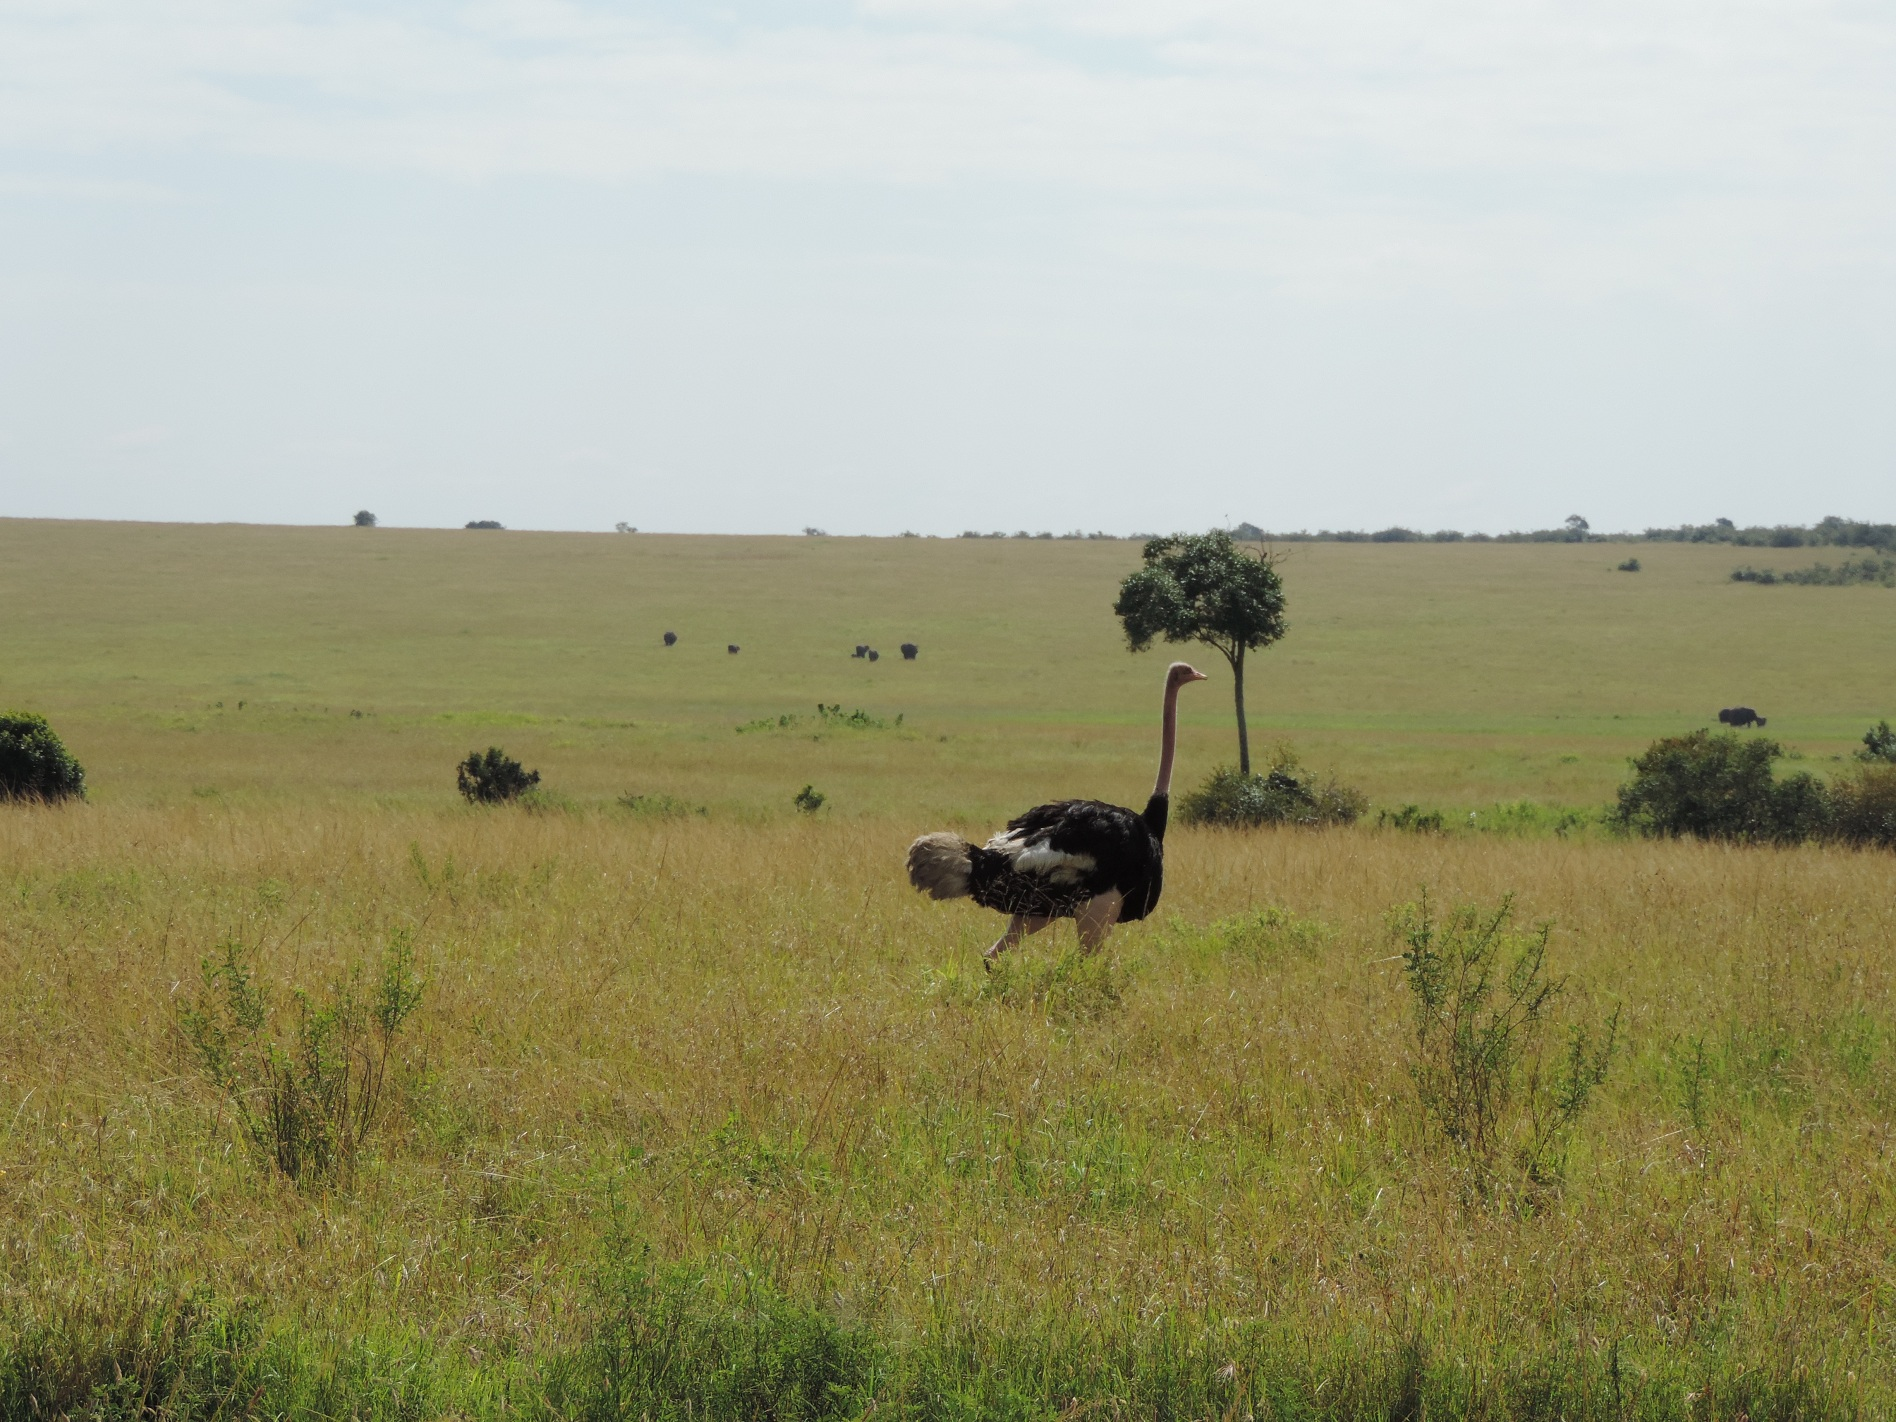 Ostrich-small group safaris,small group tours.budget camping safari